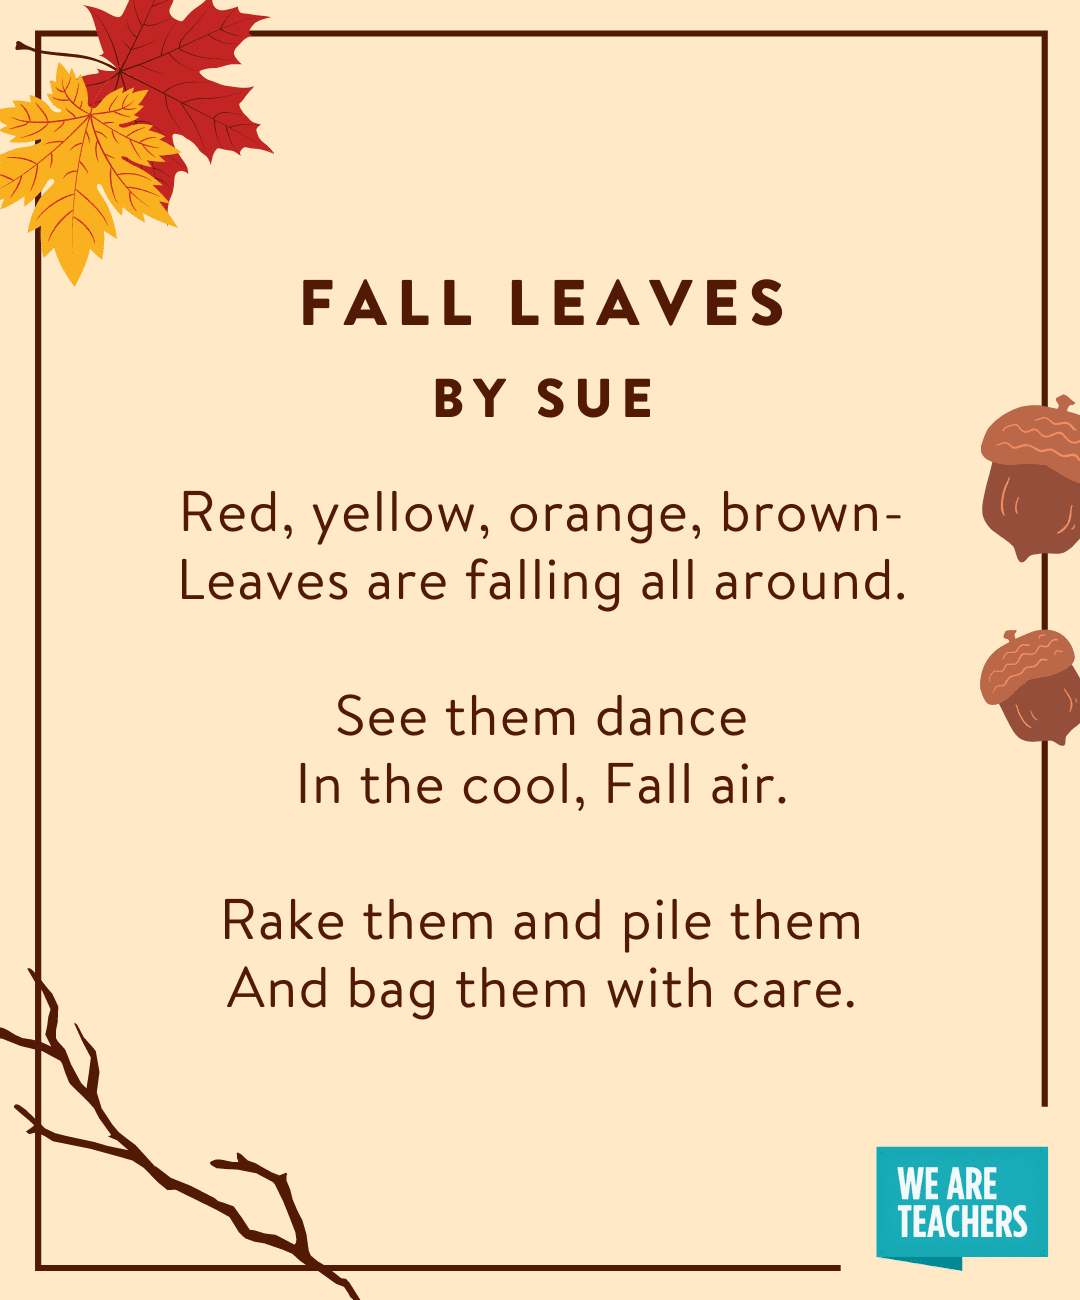 Fall Leaves by Sue